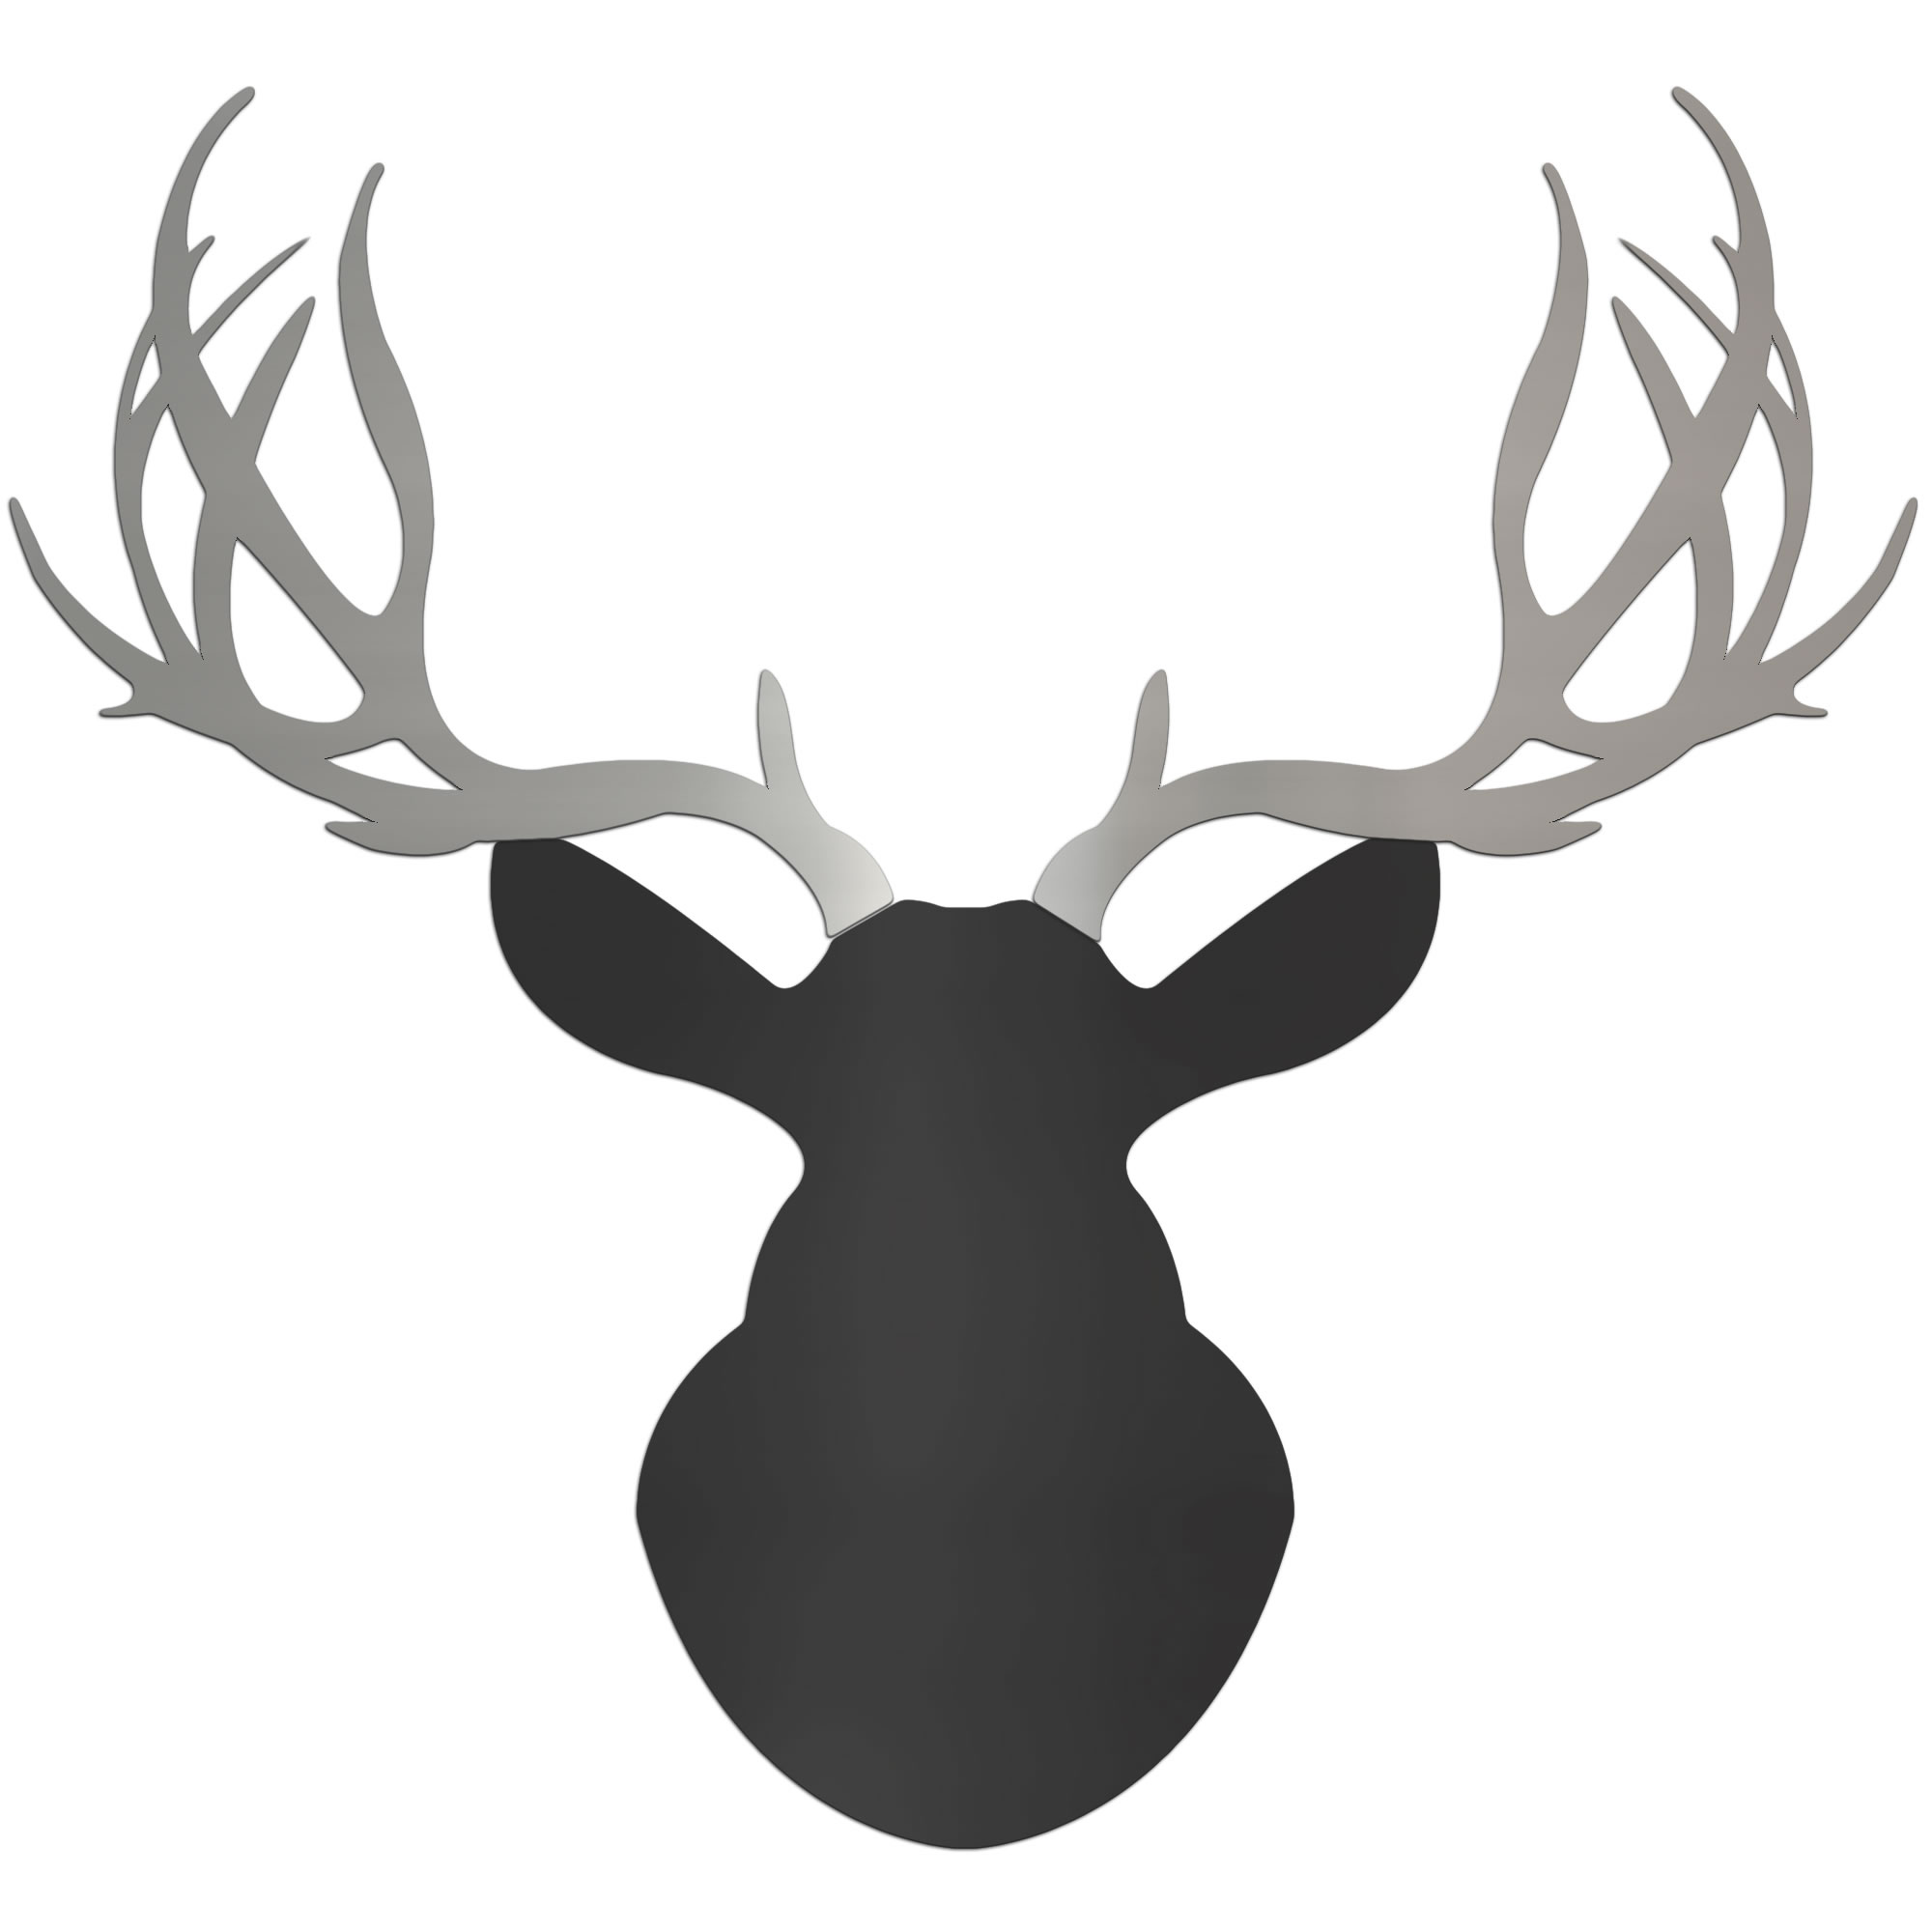 URBAN BUCK - 36x36 in. Black & Silver Deer Cut-Out